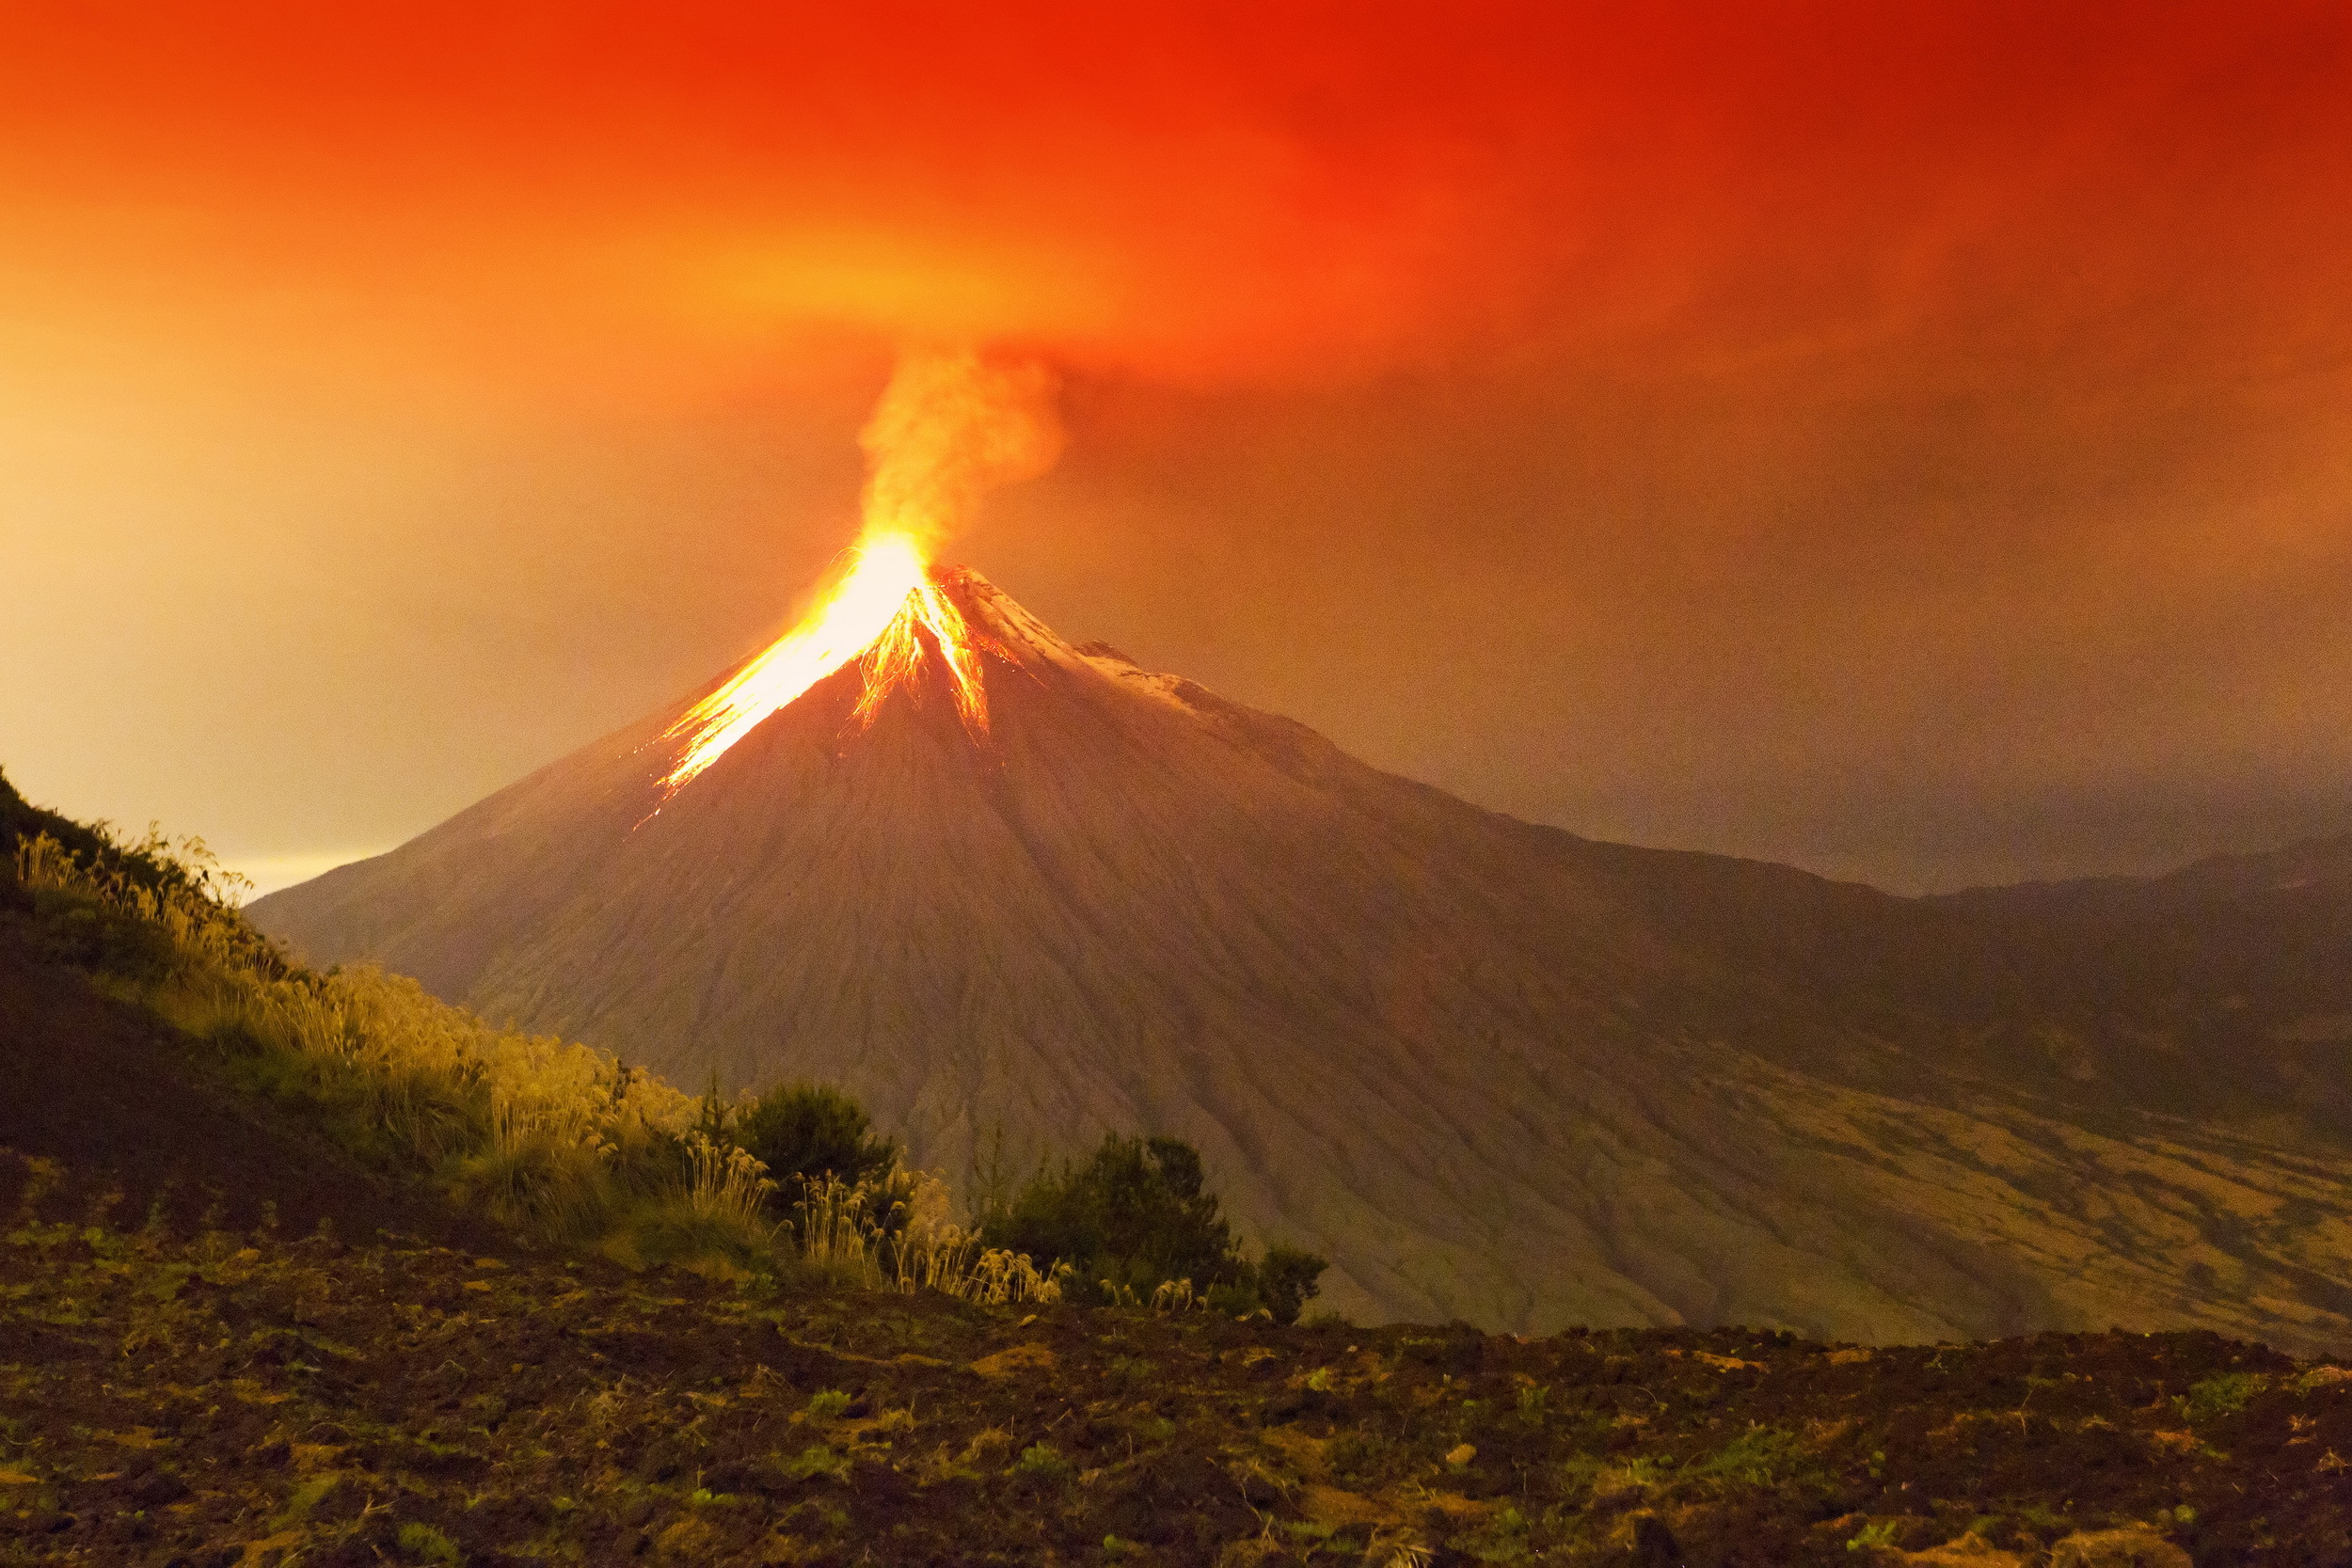 Earth.com presents an official rundown of active volcanoes in the US and around the world that could be the next to erupt.